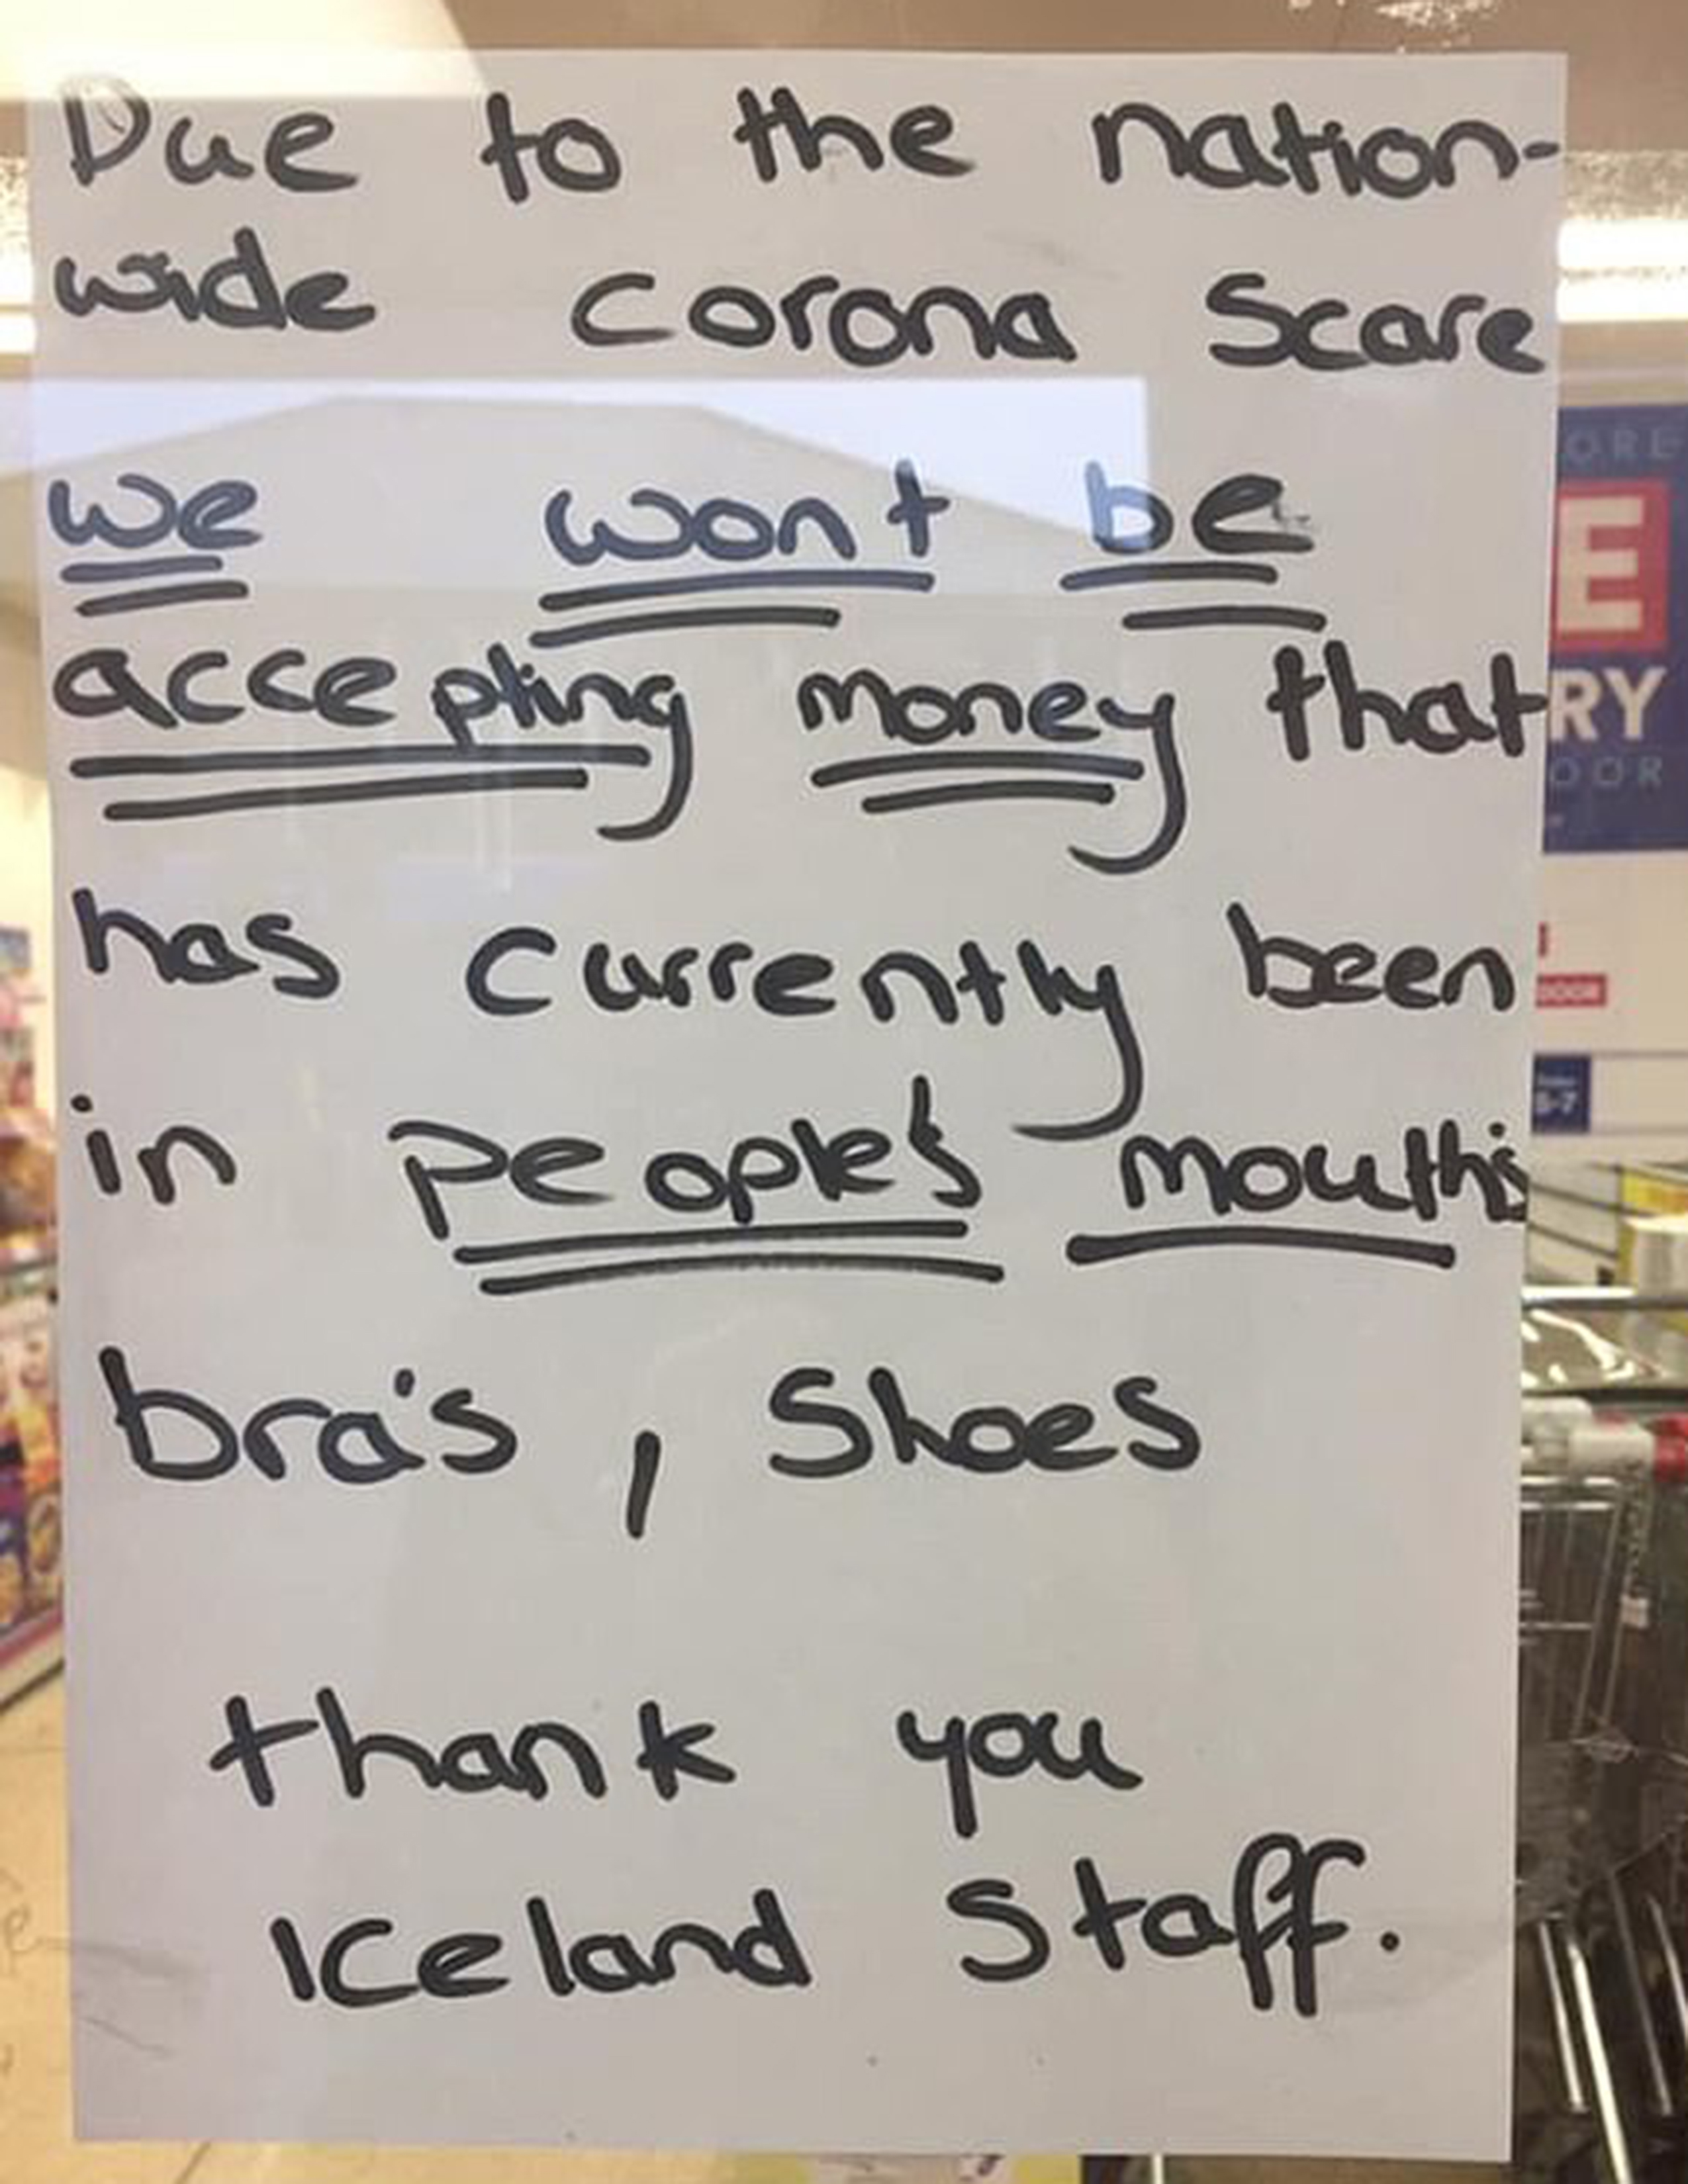 A sign from Iceland store in the UK